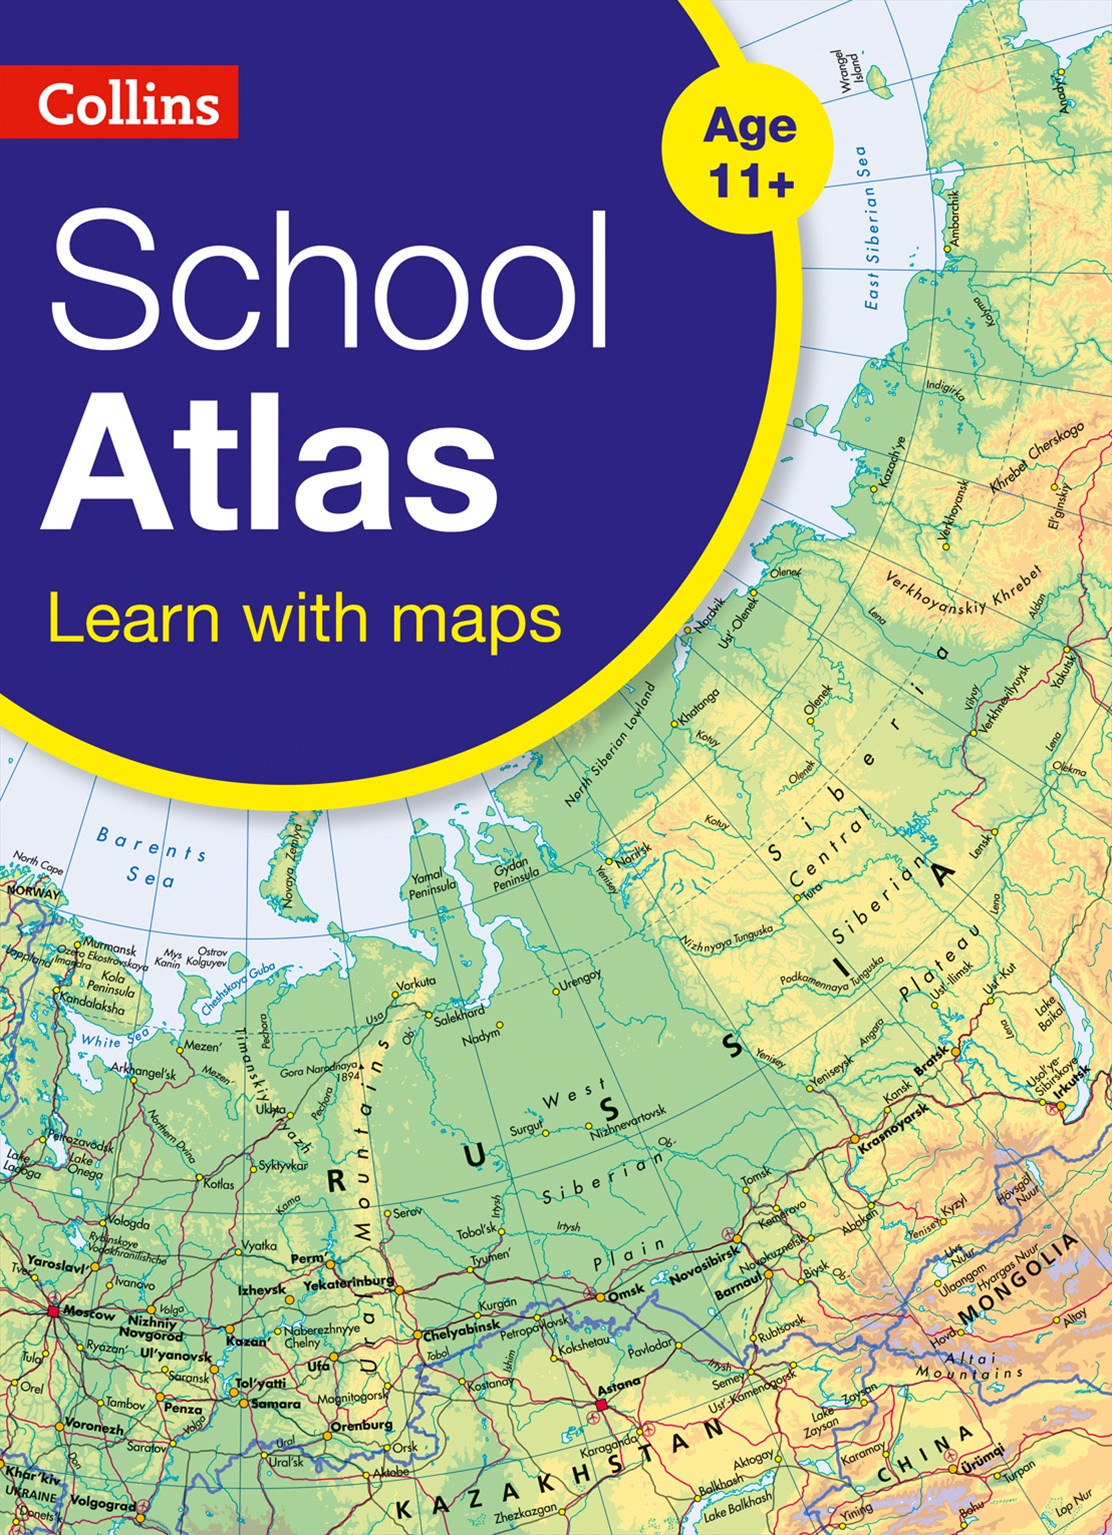 Collins School Atlas [4th Edition]